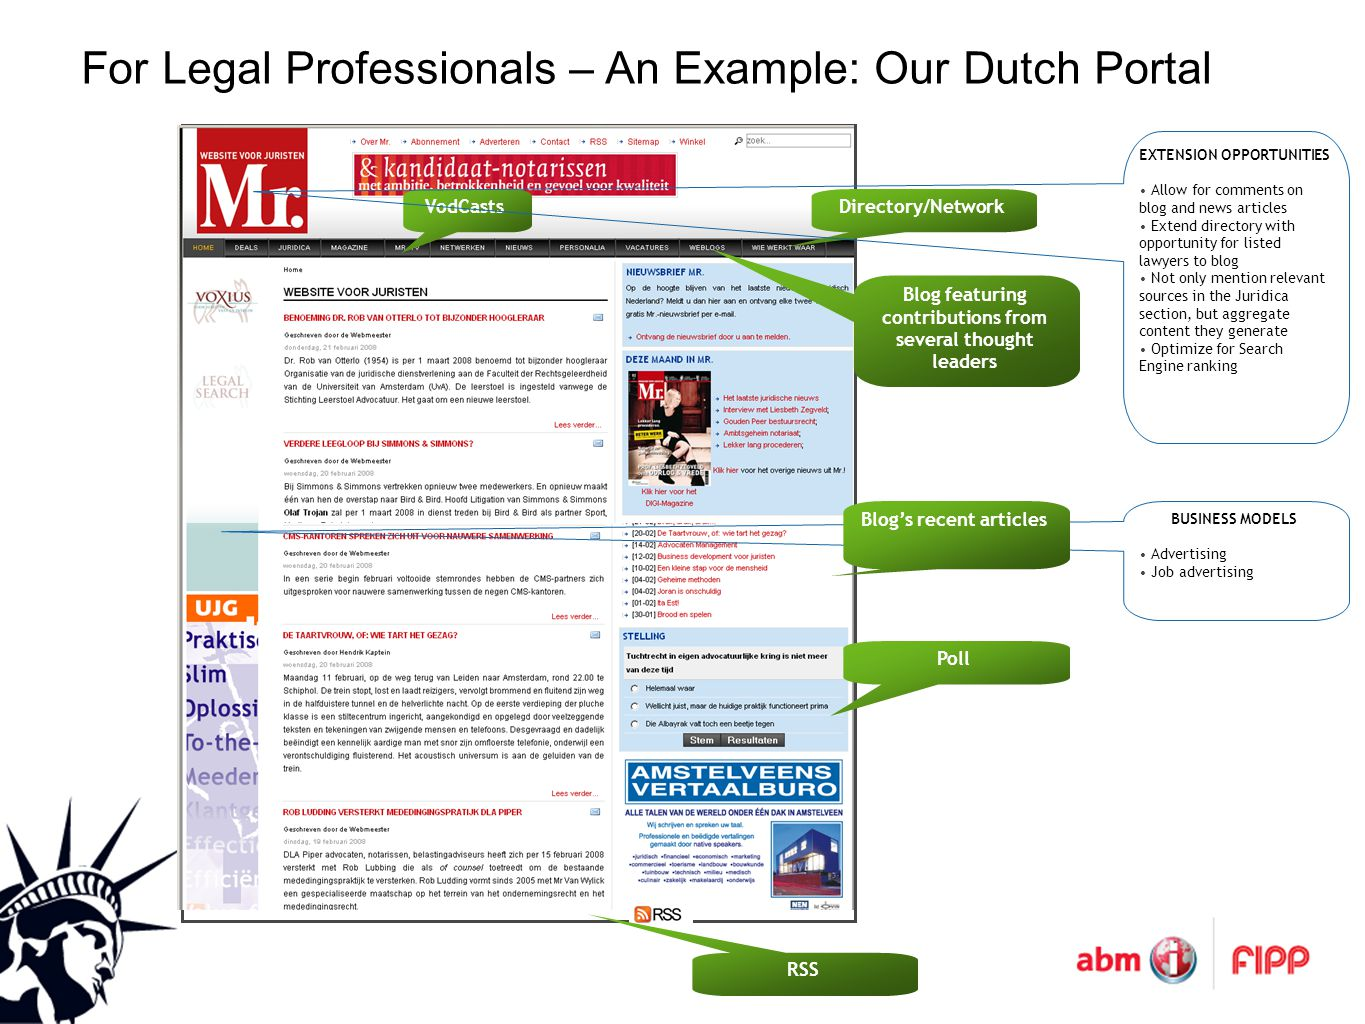 For Legal Professionals – An Example: Our Dutch Portal Poll VodCastsDirectory/Network RSS Blog featuring contributions from several thought leaders EXTENSION OPPORTUNITIES Allow for comments on blog and news articles Extend directory with opportunity for listed lawyers to blog Not only mention relevant sources in the Juridica section, but aggregate content they generate Optimize for Search Engine ranking BUSINESS MODELS Advertising Job advertising Blog's recent articles